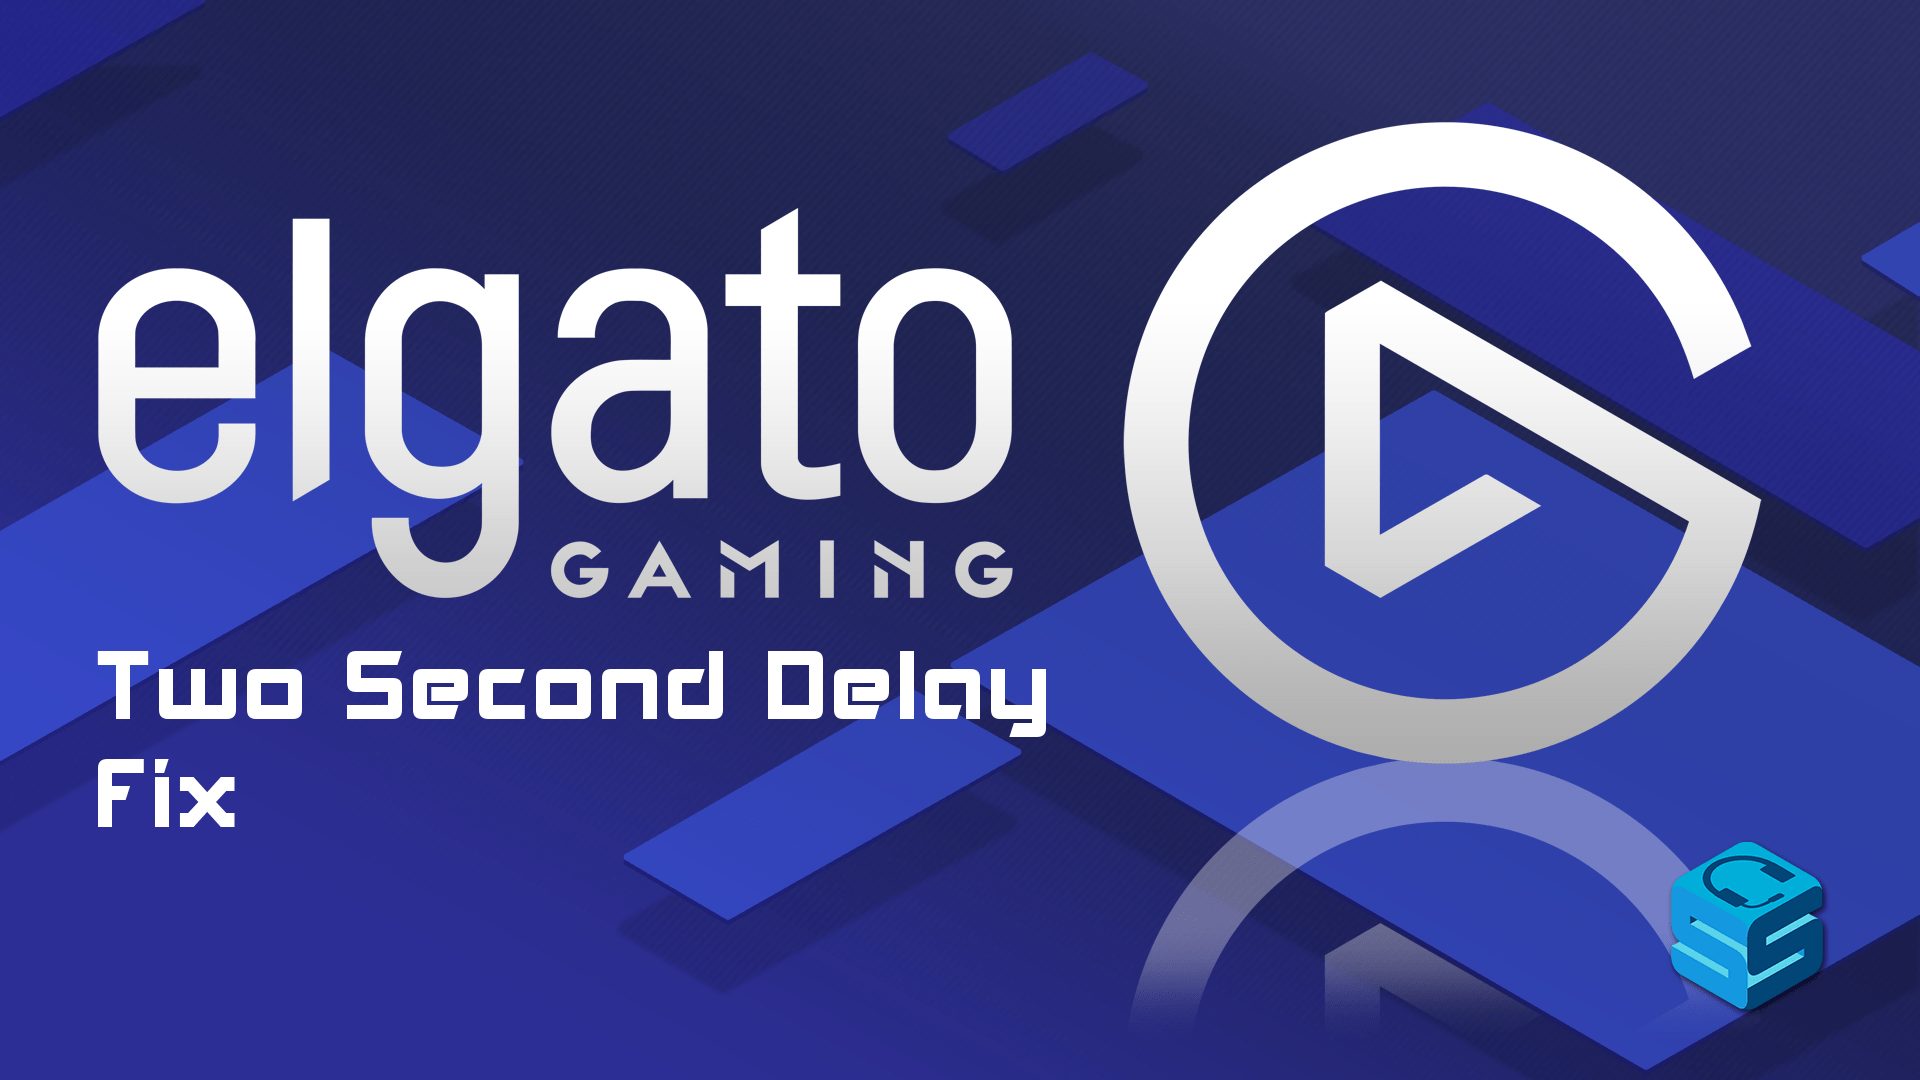 How to Fix the Elgato Capture Card Delay